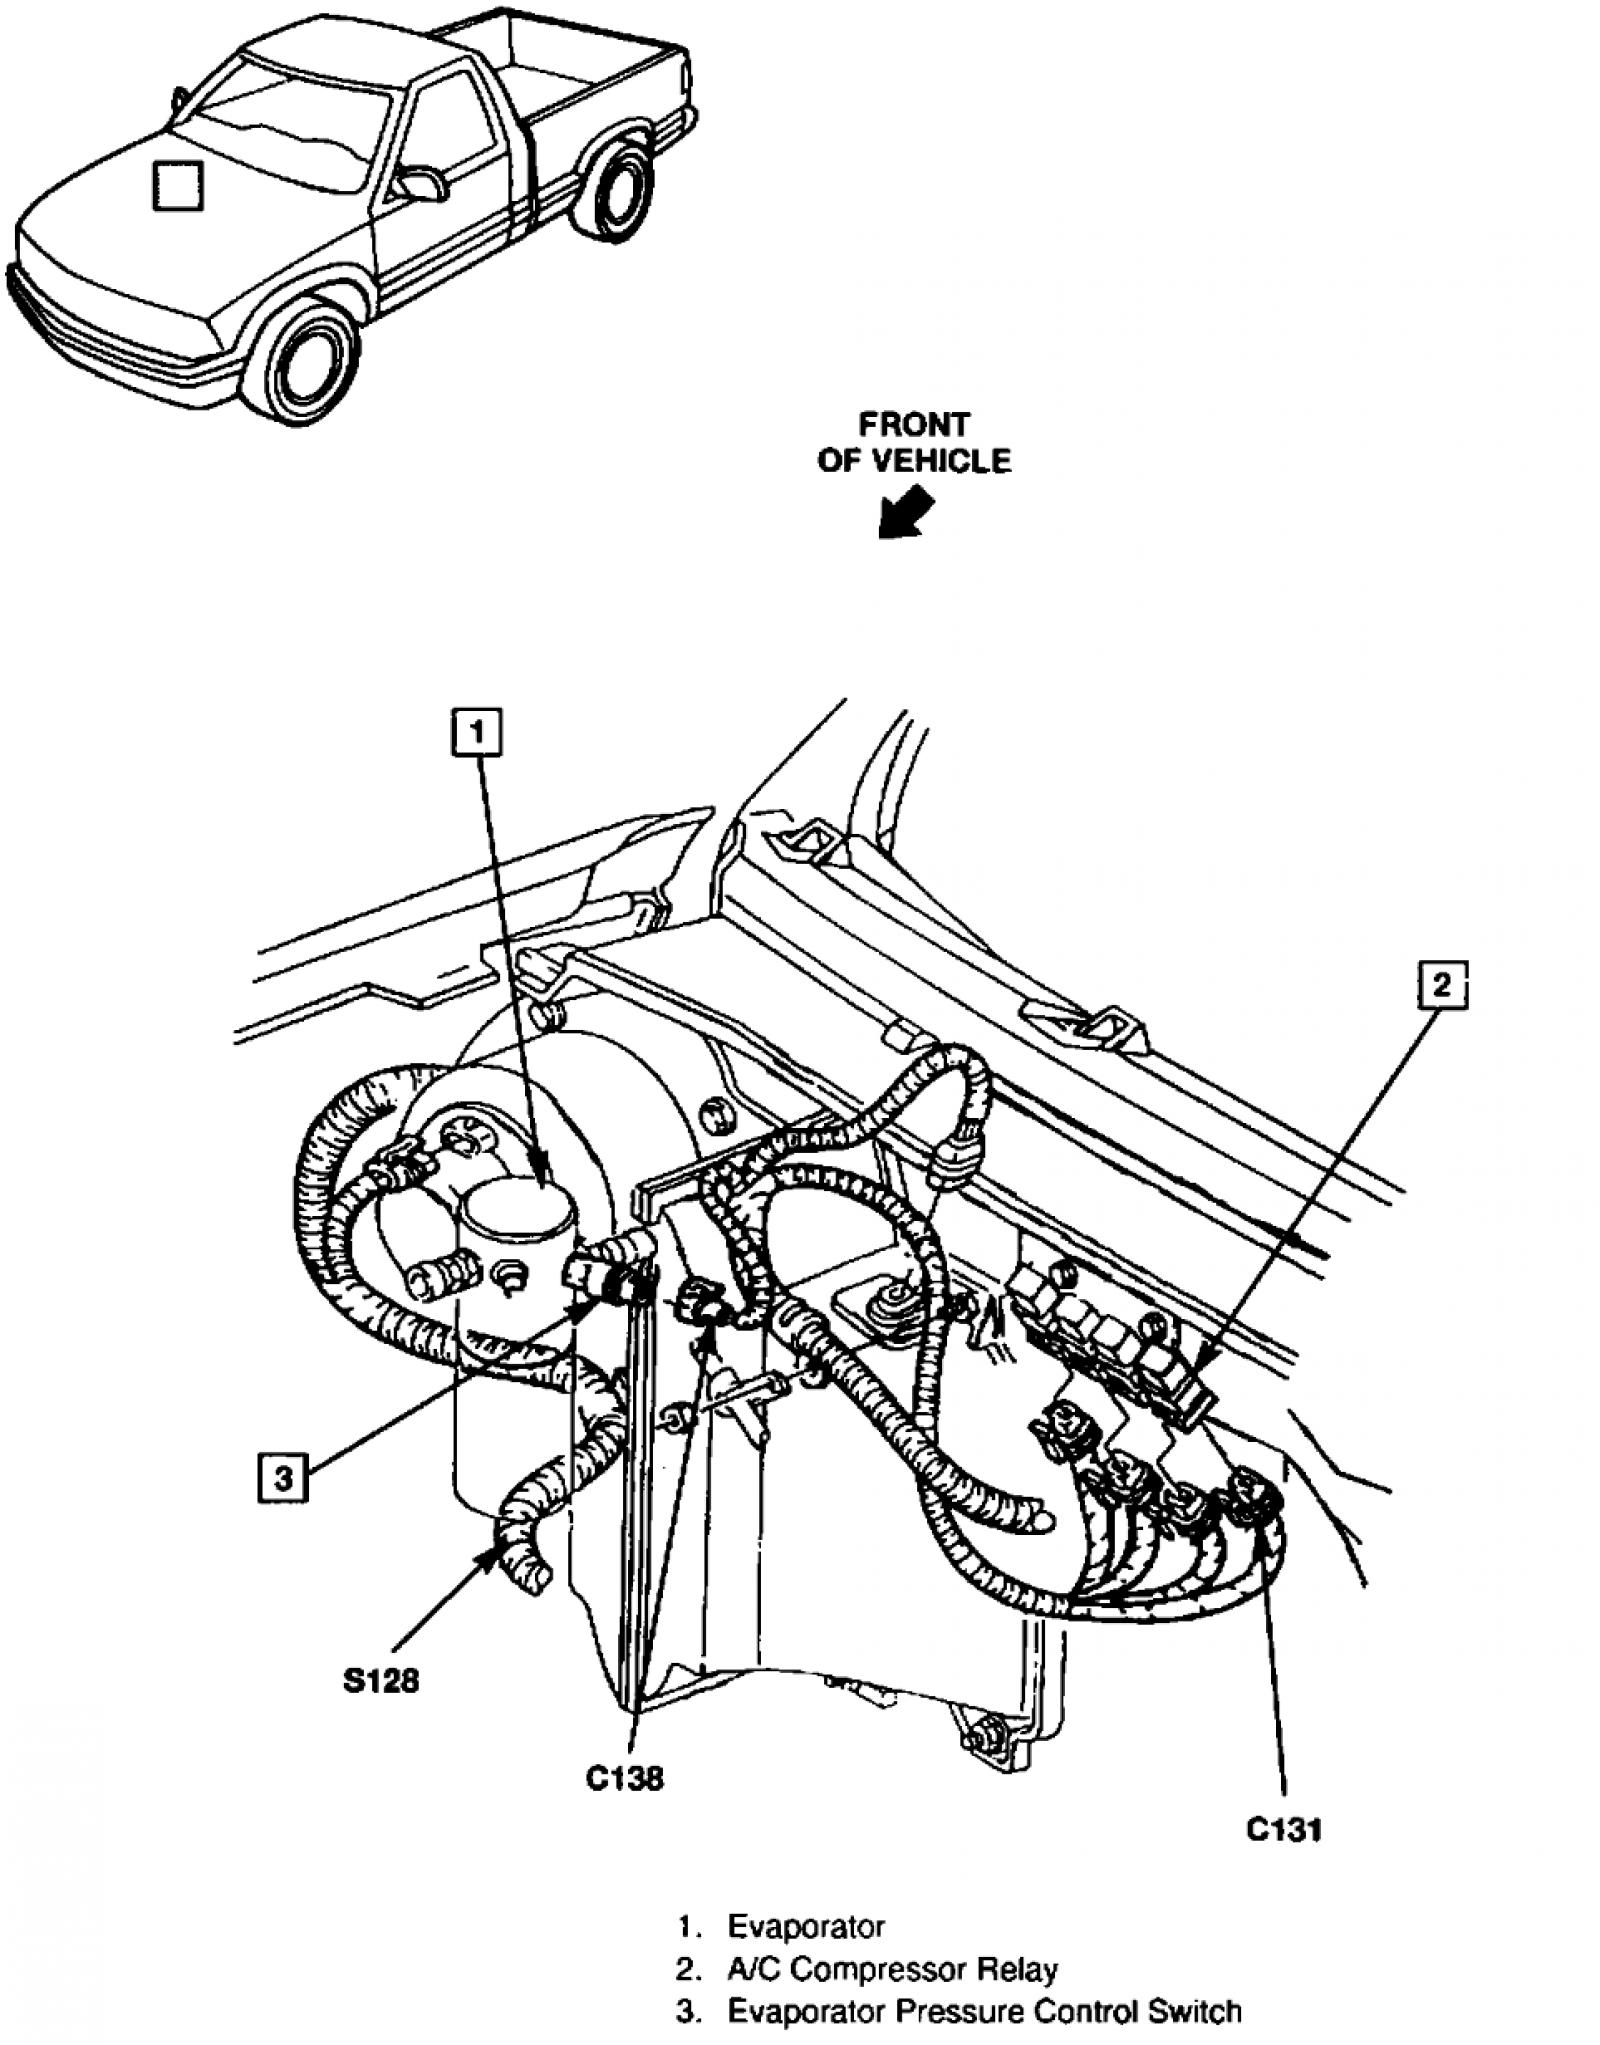 2000 Gmc Sonoma Fuel Pump Wiring Diagram on S10 Engine Diagram